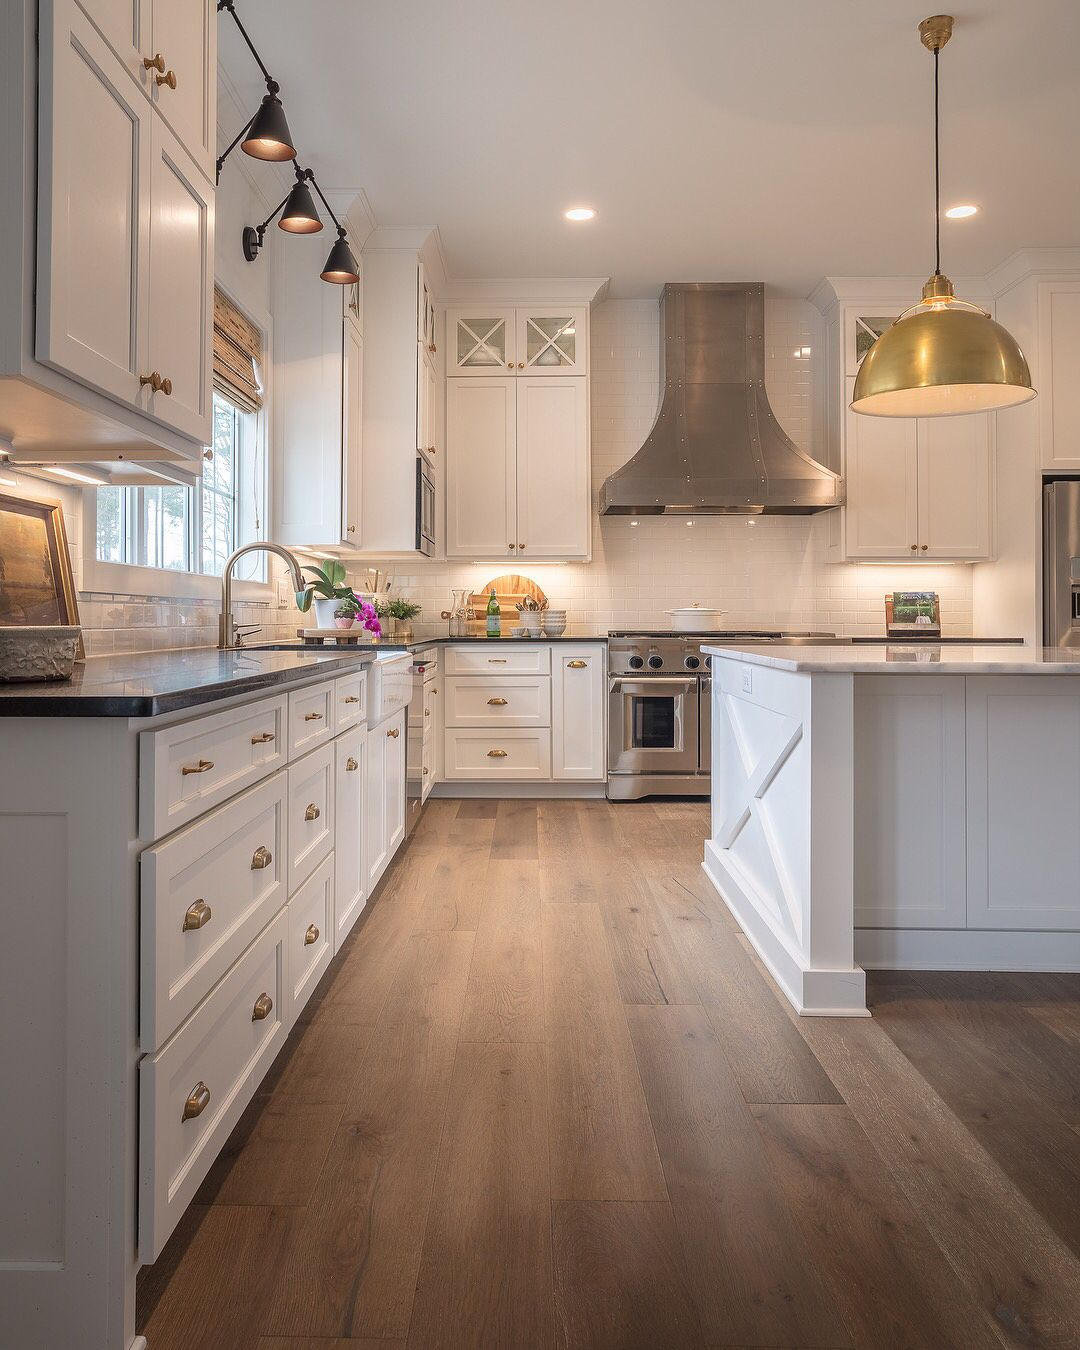 Surf pictures of kitchen area styles. Discover inspiration ...